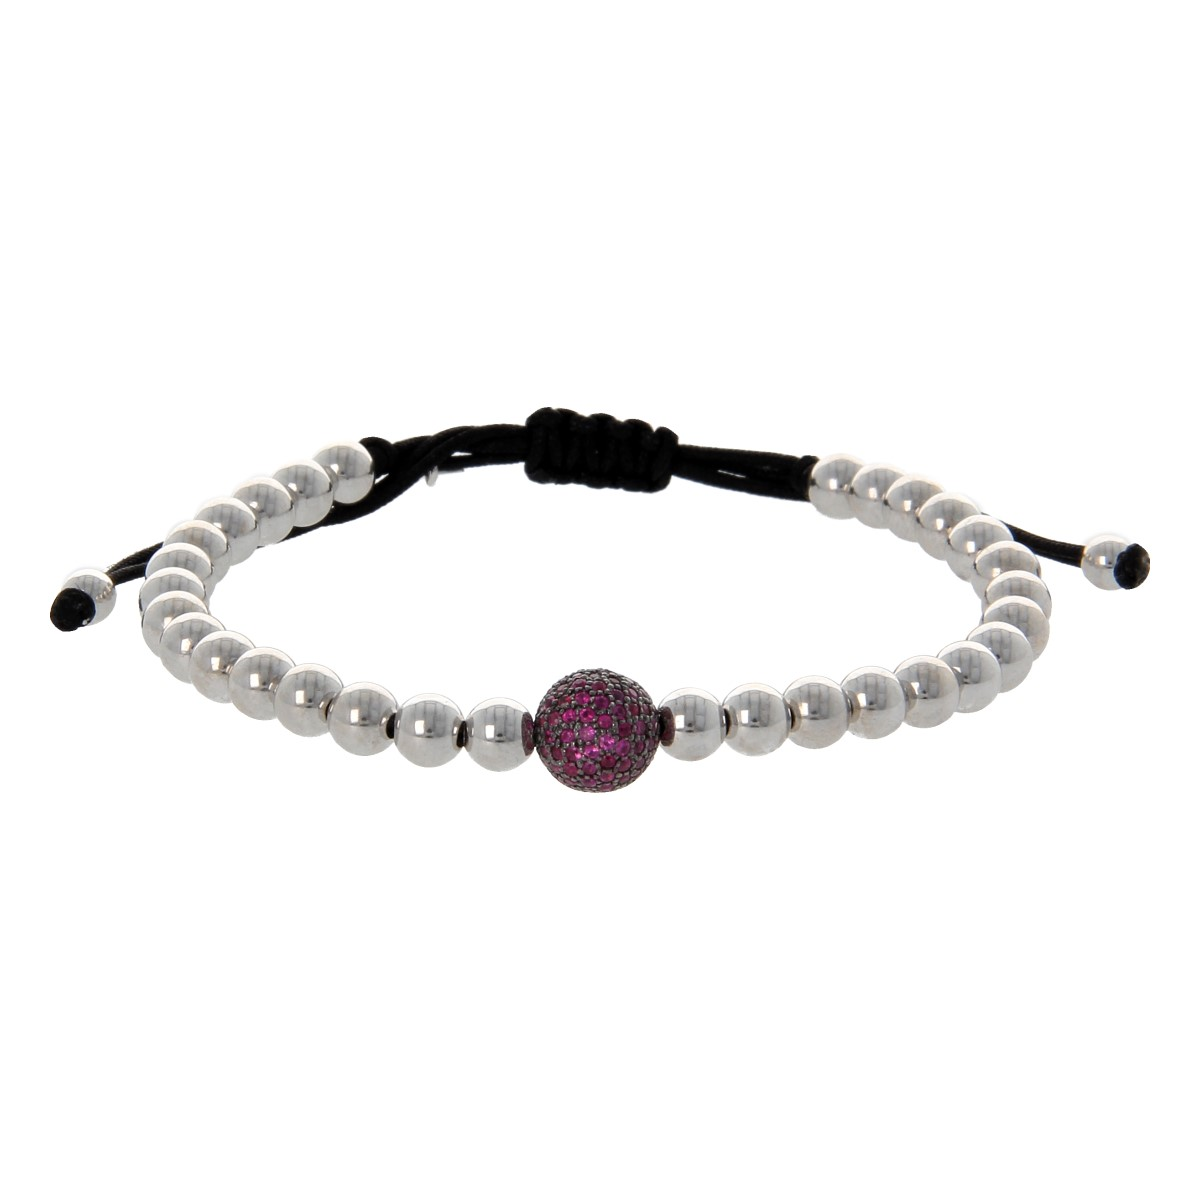 Black String Luxury Bracelet with White Gold Pearls and Rubies